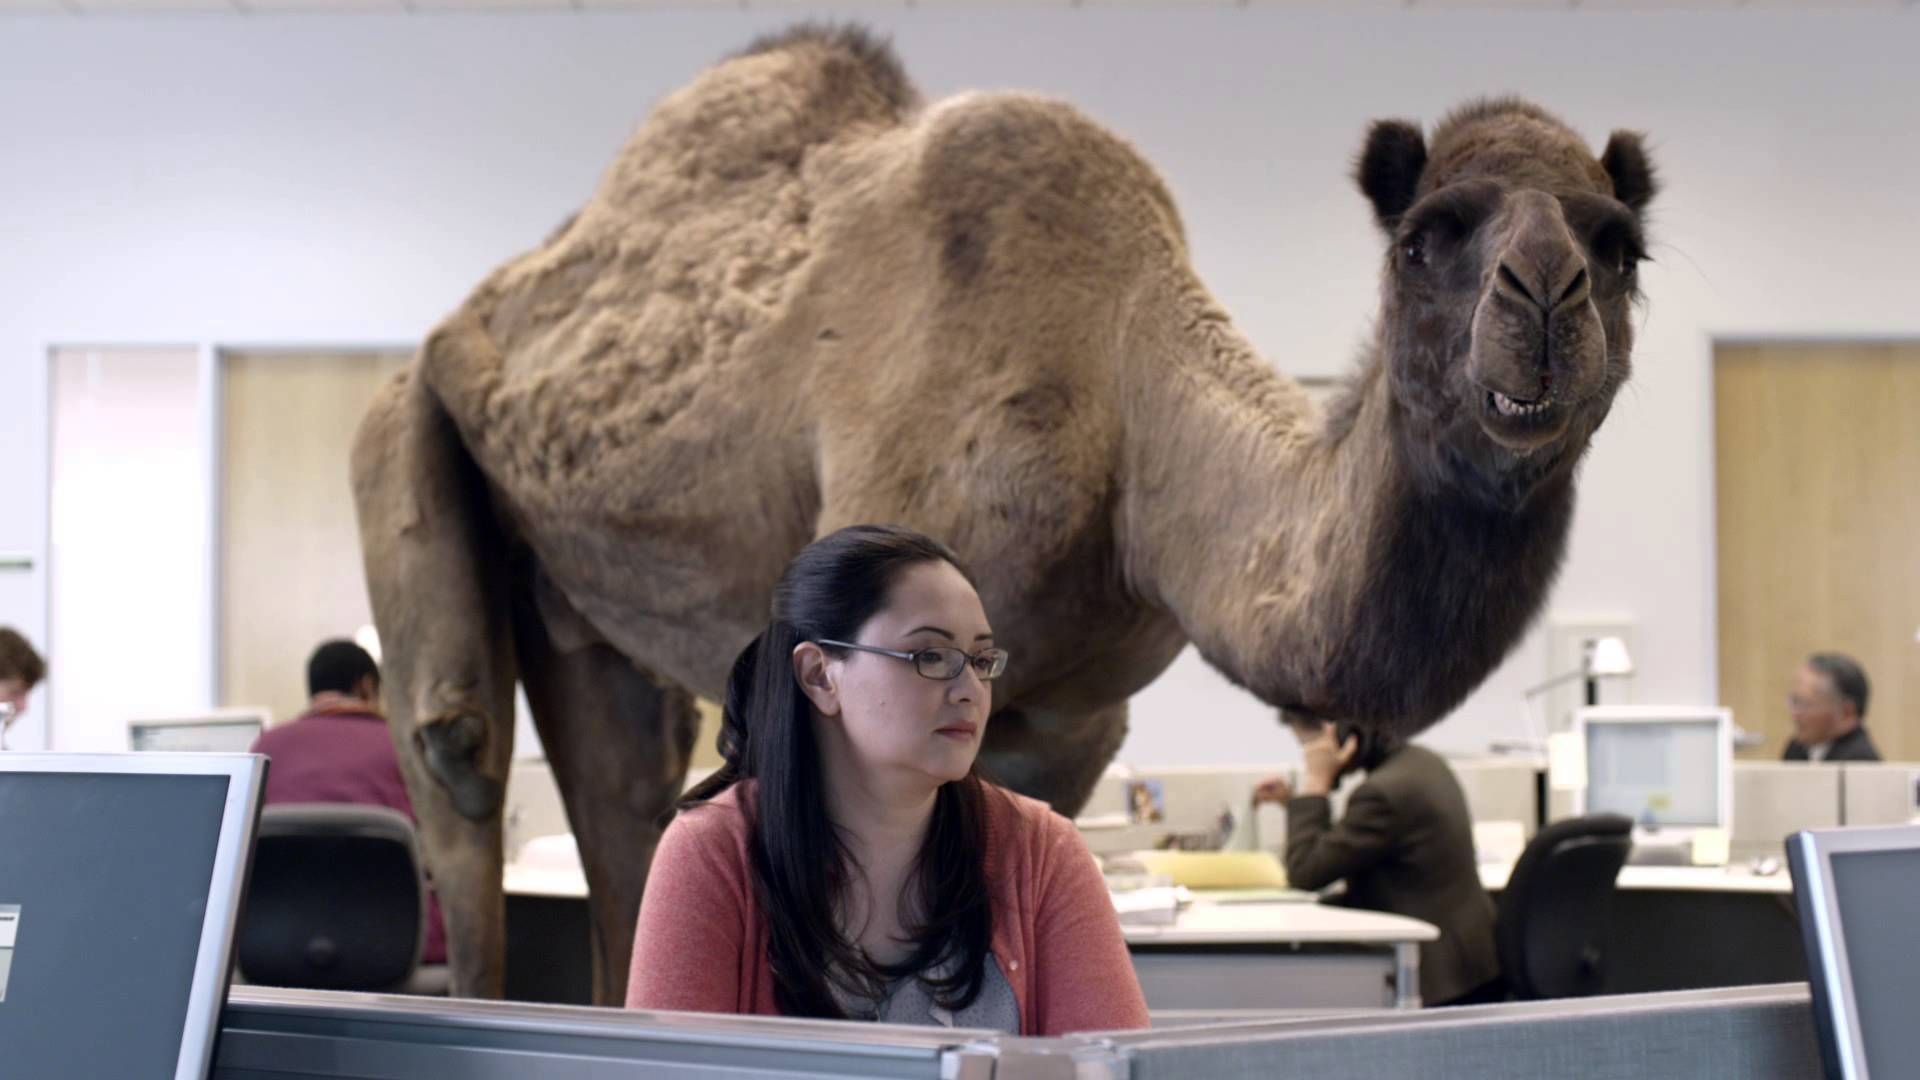 HUMP DAY!!!! mike mike mike mike guess what day it is. HUMP DAY.. YEAHHH.. XD HAPPY HUMP DAY!